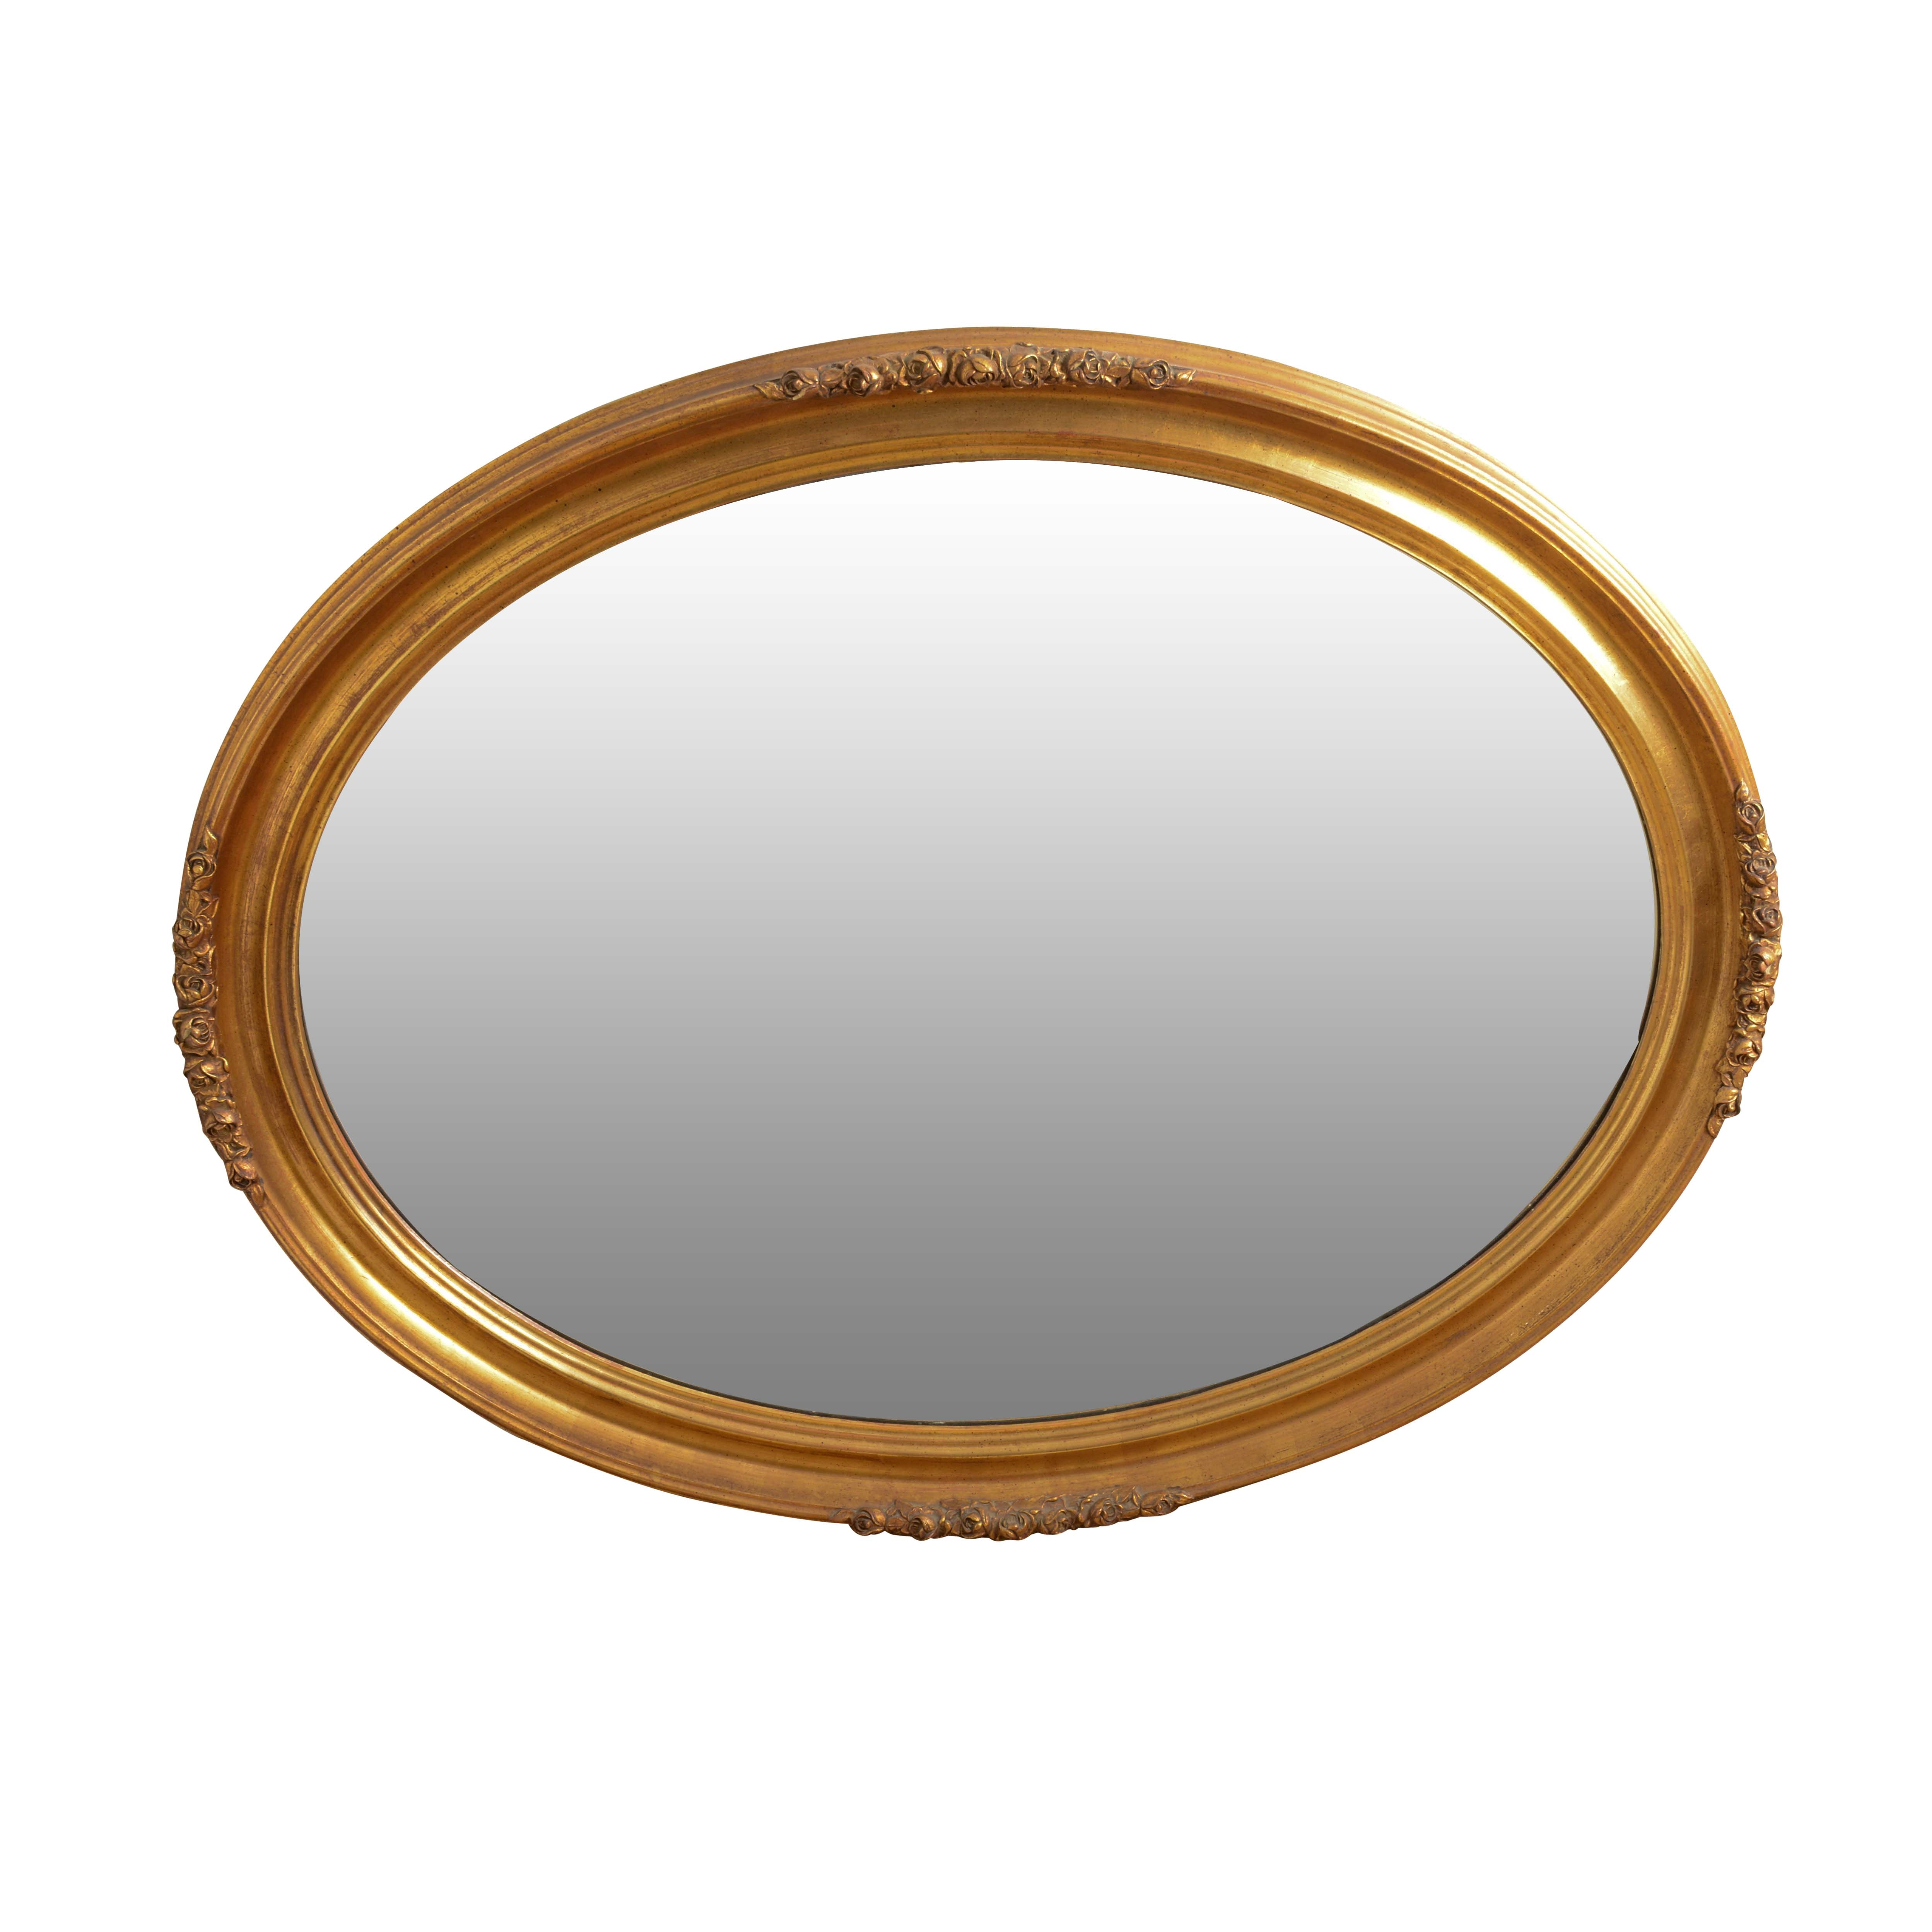 Vintage Gold Toned Oval Wall Mirror